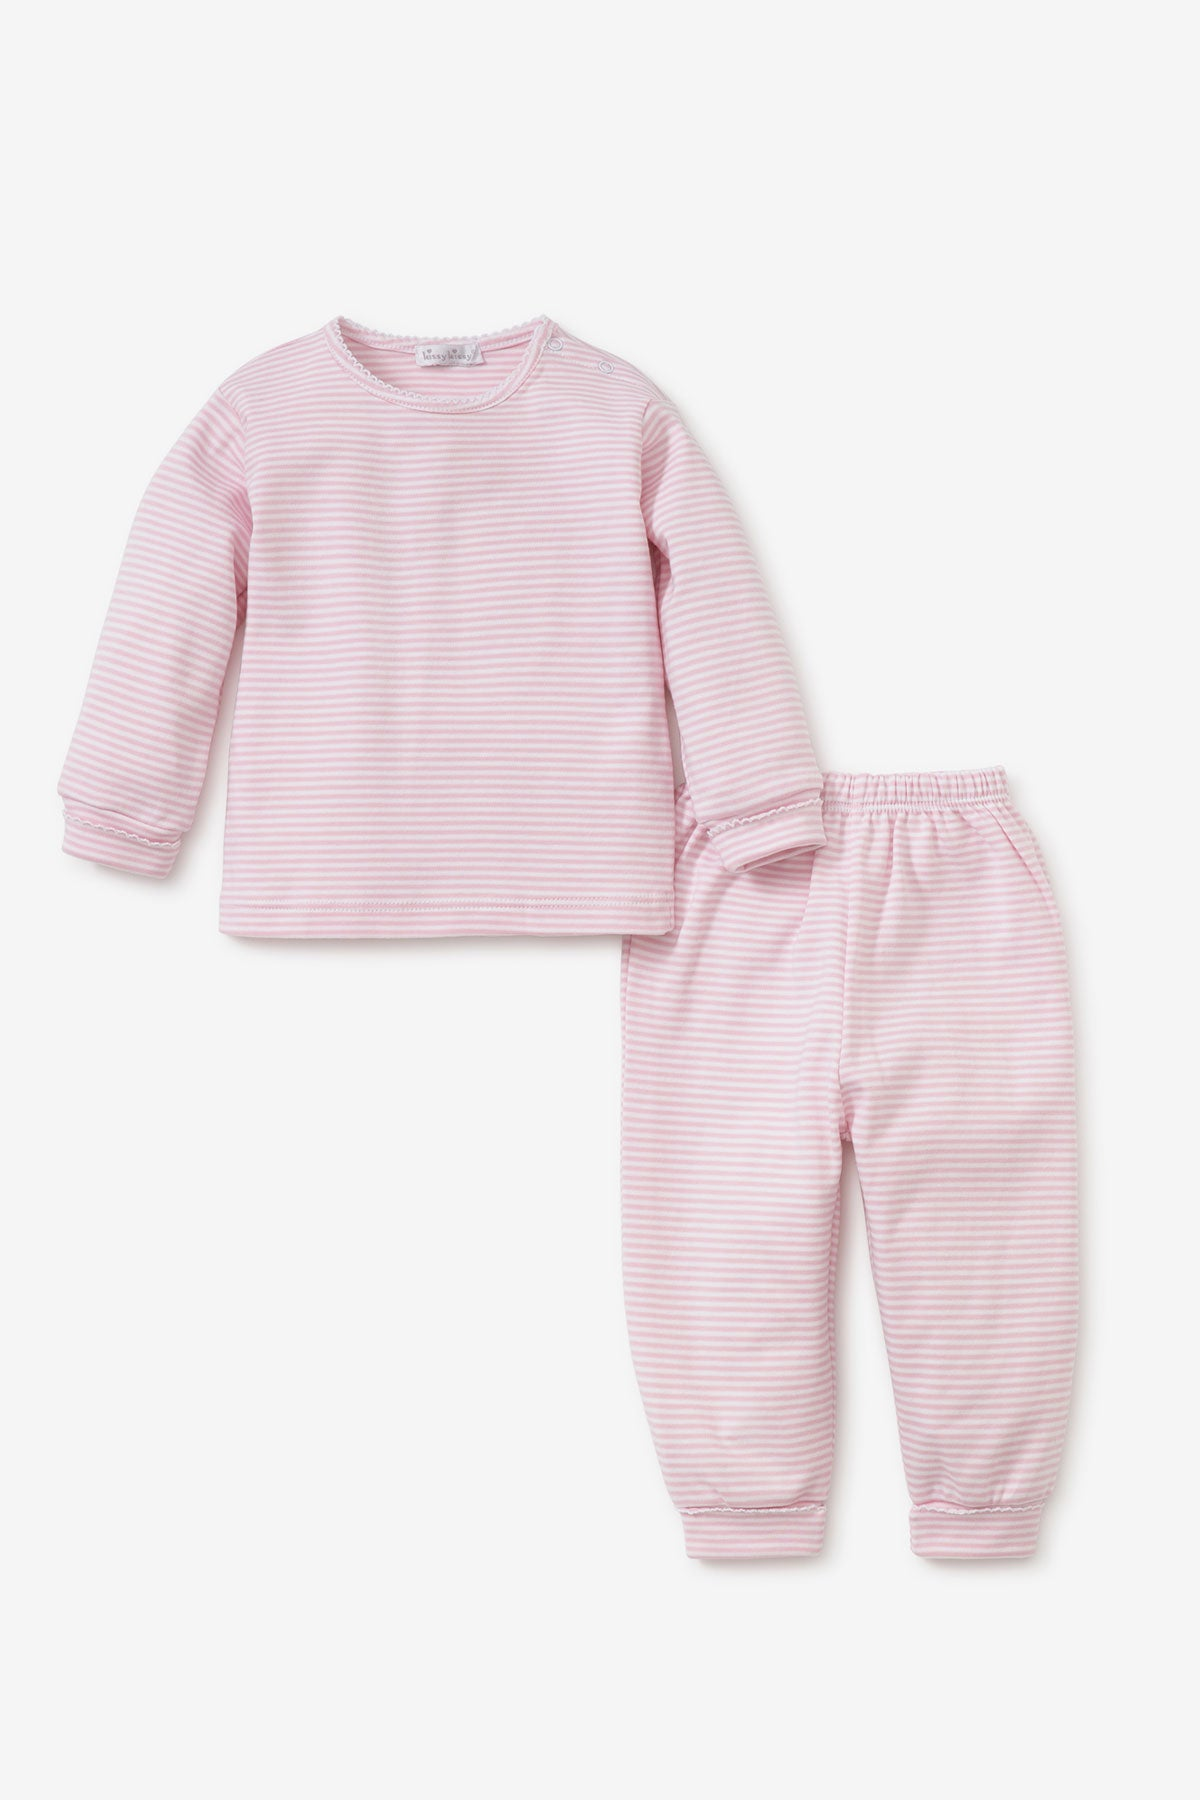 Kissy Kissy Pink Striped Baby Set